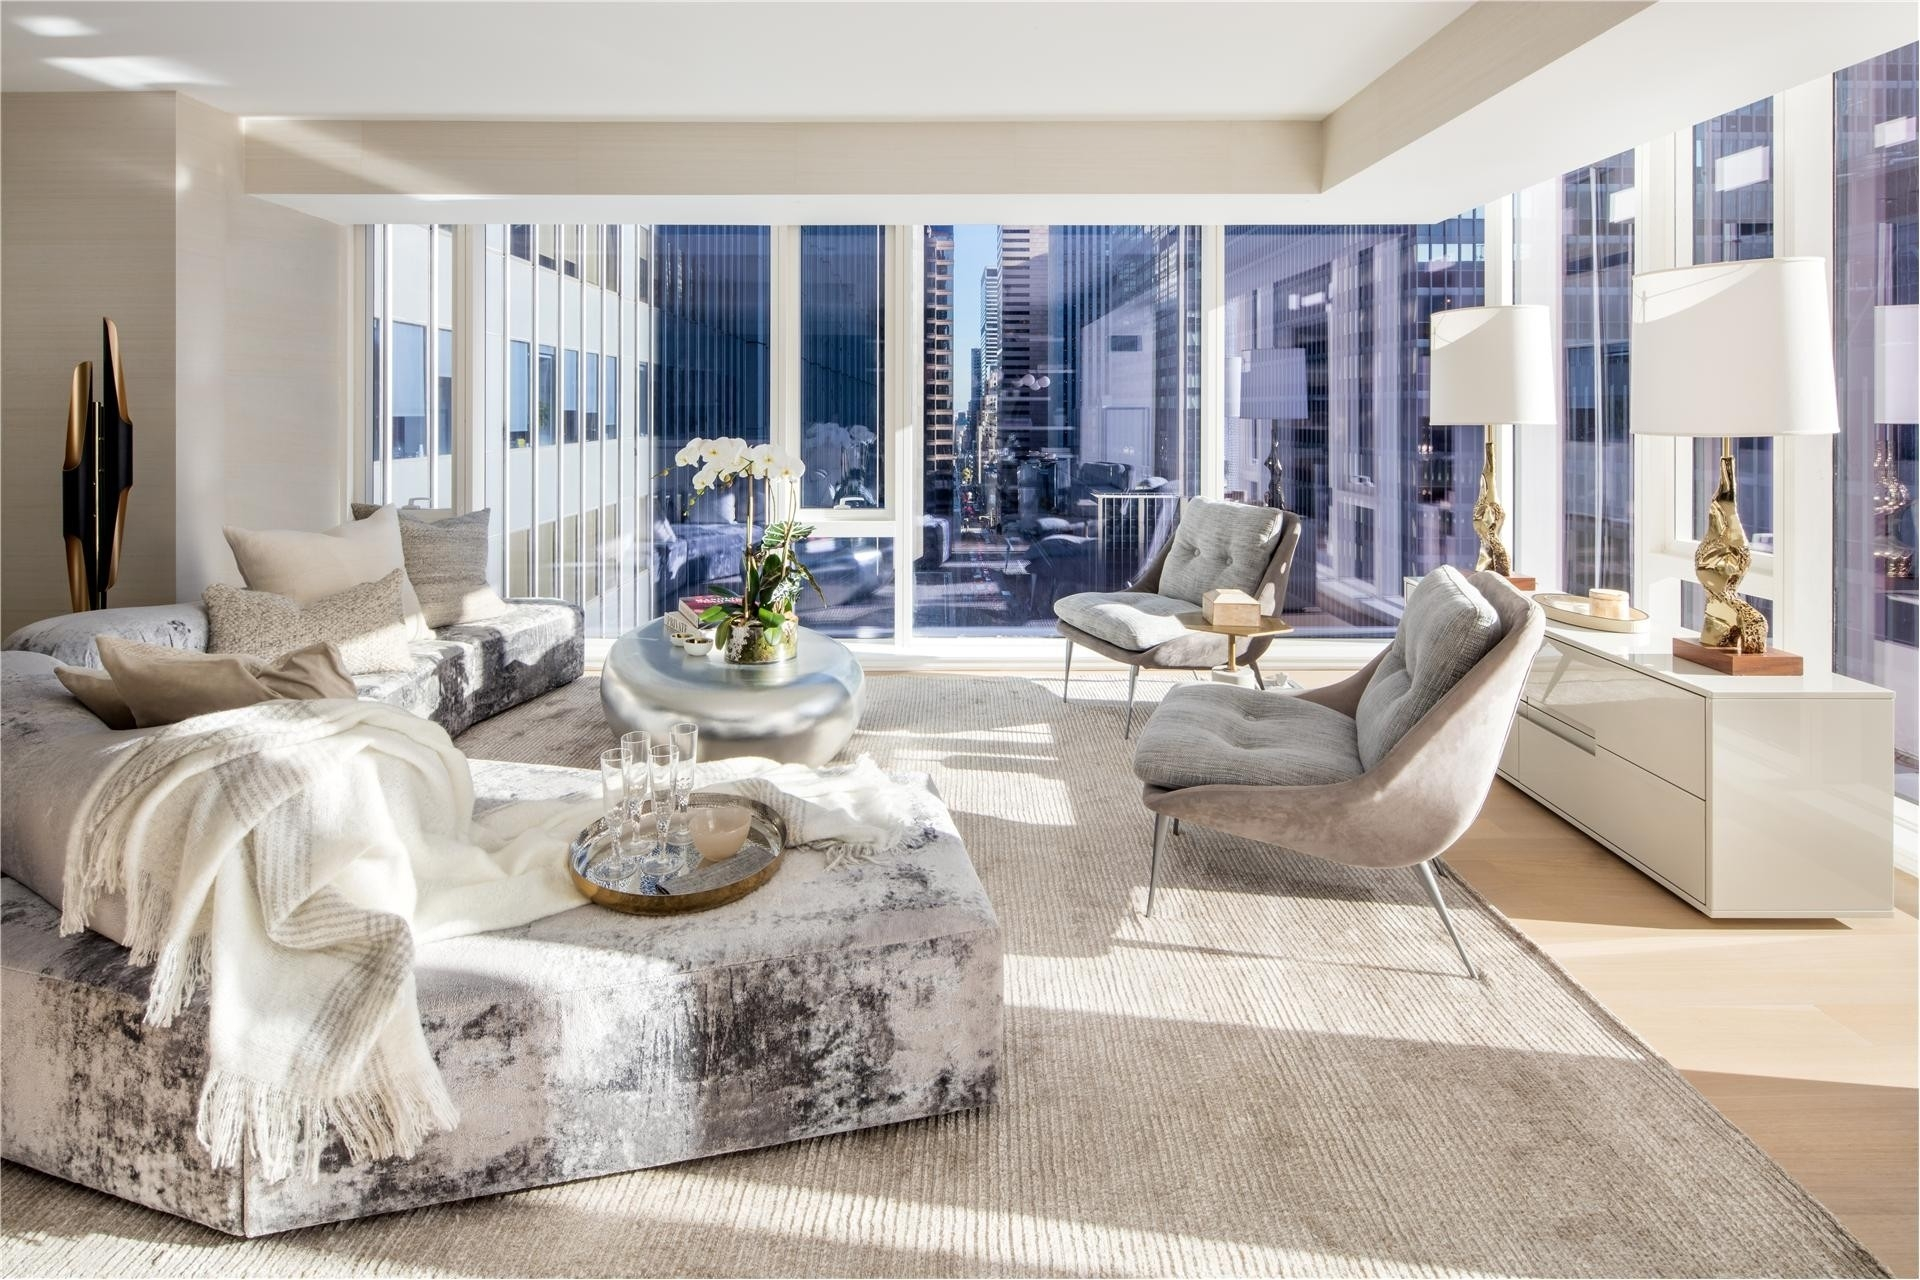 Condominium at 135 West 52nd St, 19A Theater District - Times Square, New York